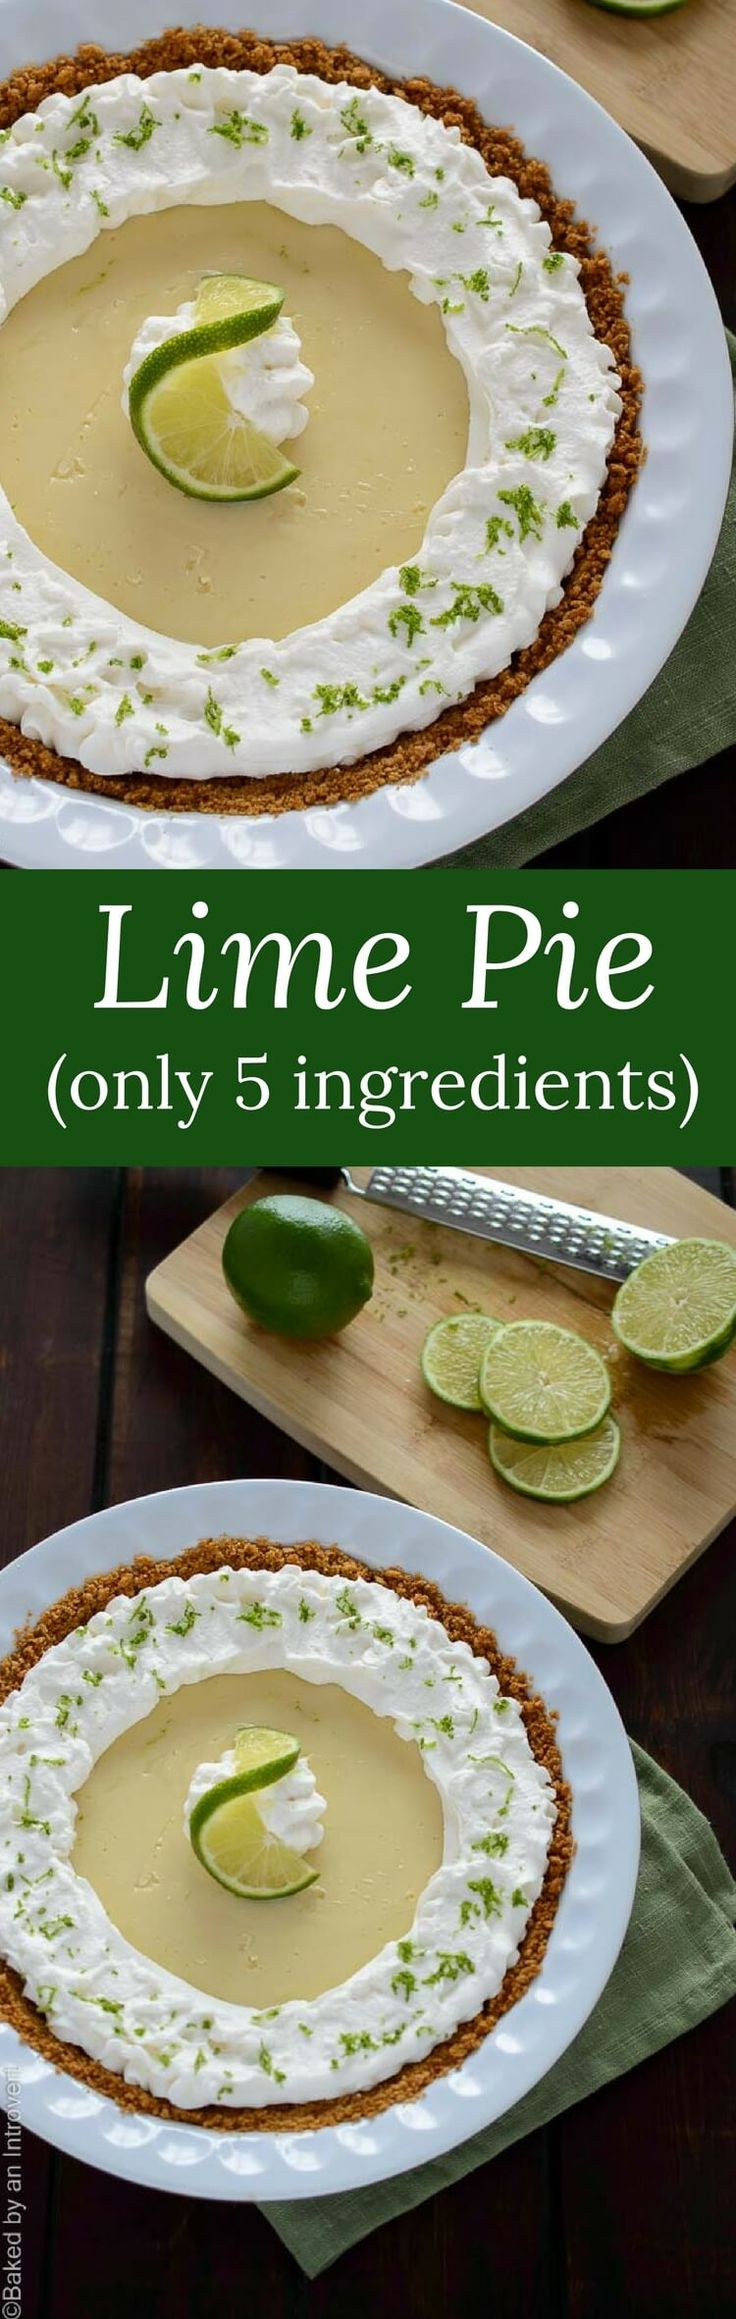 This 5 ingredient lime pie features the perfect balance between sweet and tart with a cool, creamy texture. No summer is complete without it! via @introvertbaker